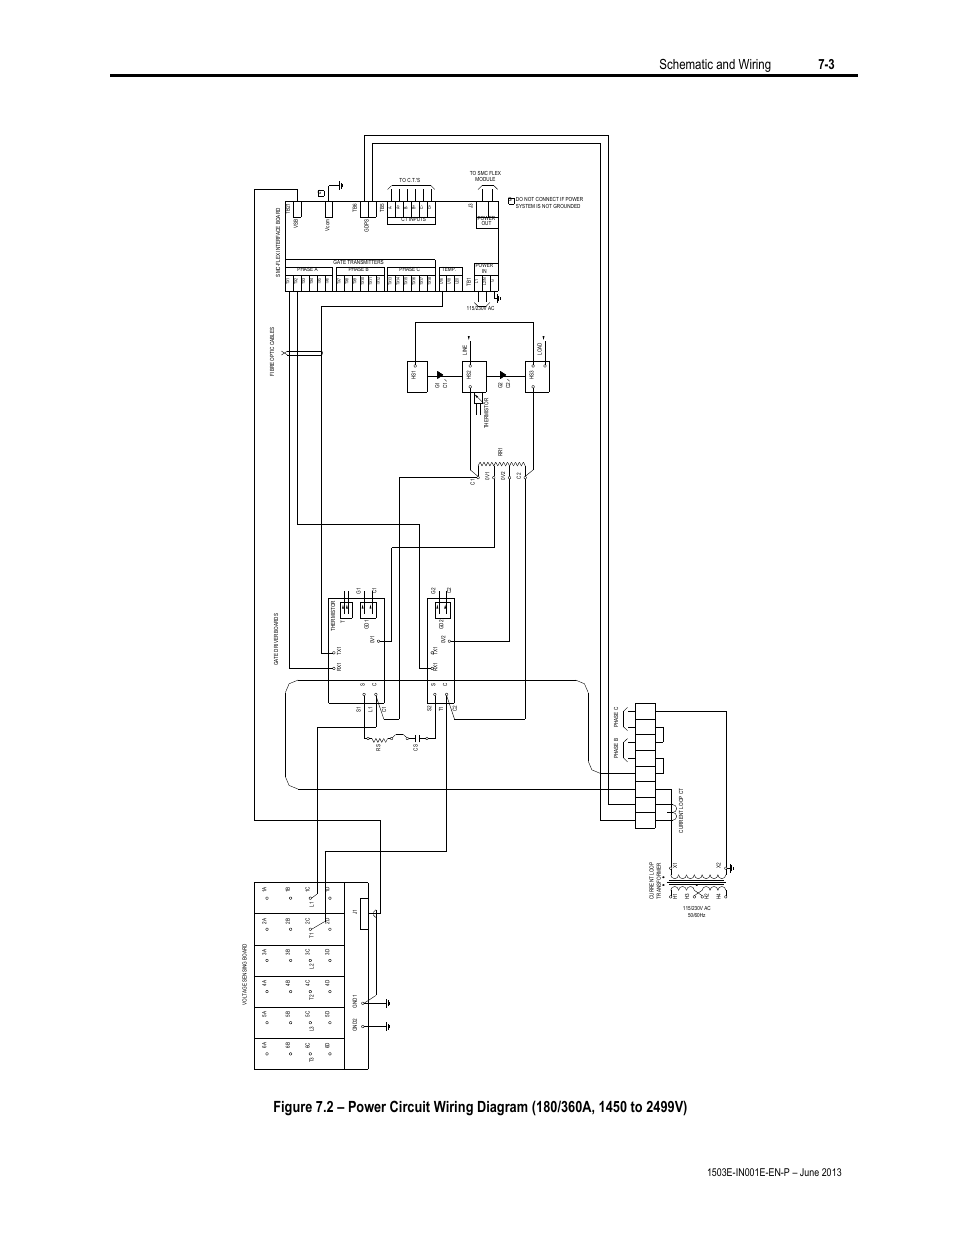 Millivolt Wiring Schematic Diagram Libraries Ds845 Gas Valve Mv Libraryschematic And 7 3 Rockwell Automation Smc Flex Oem Components